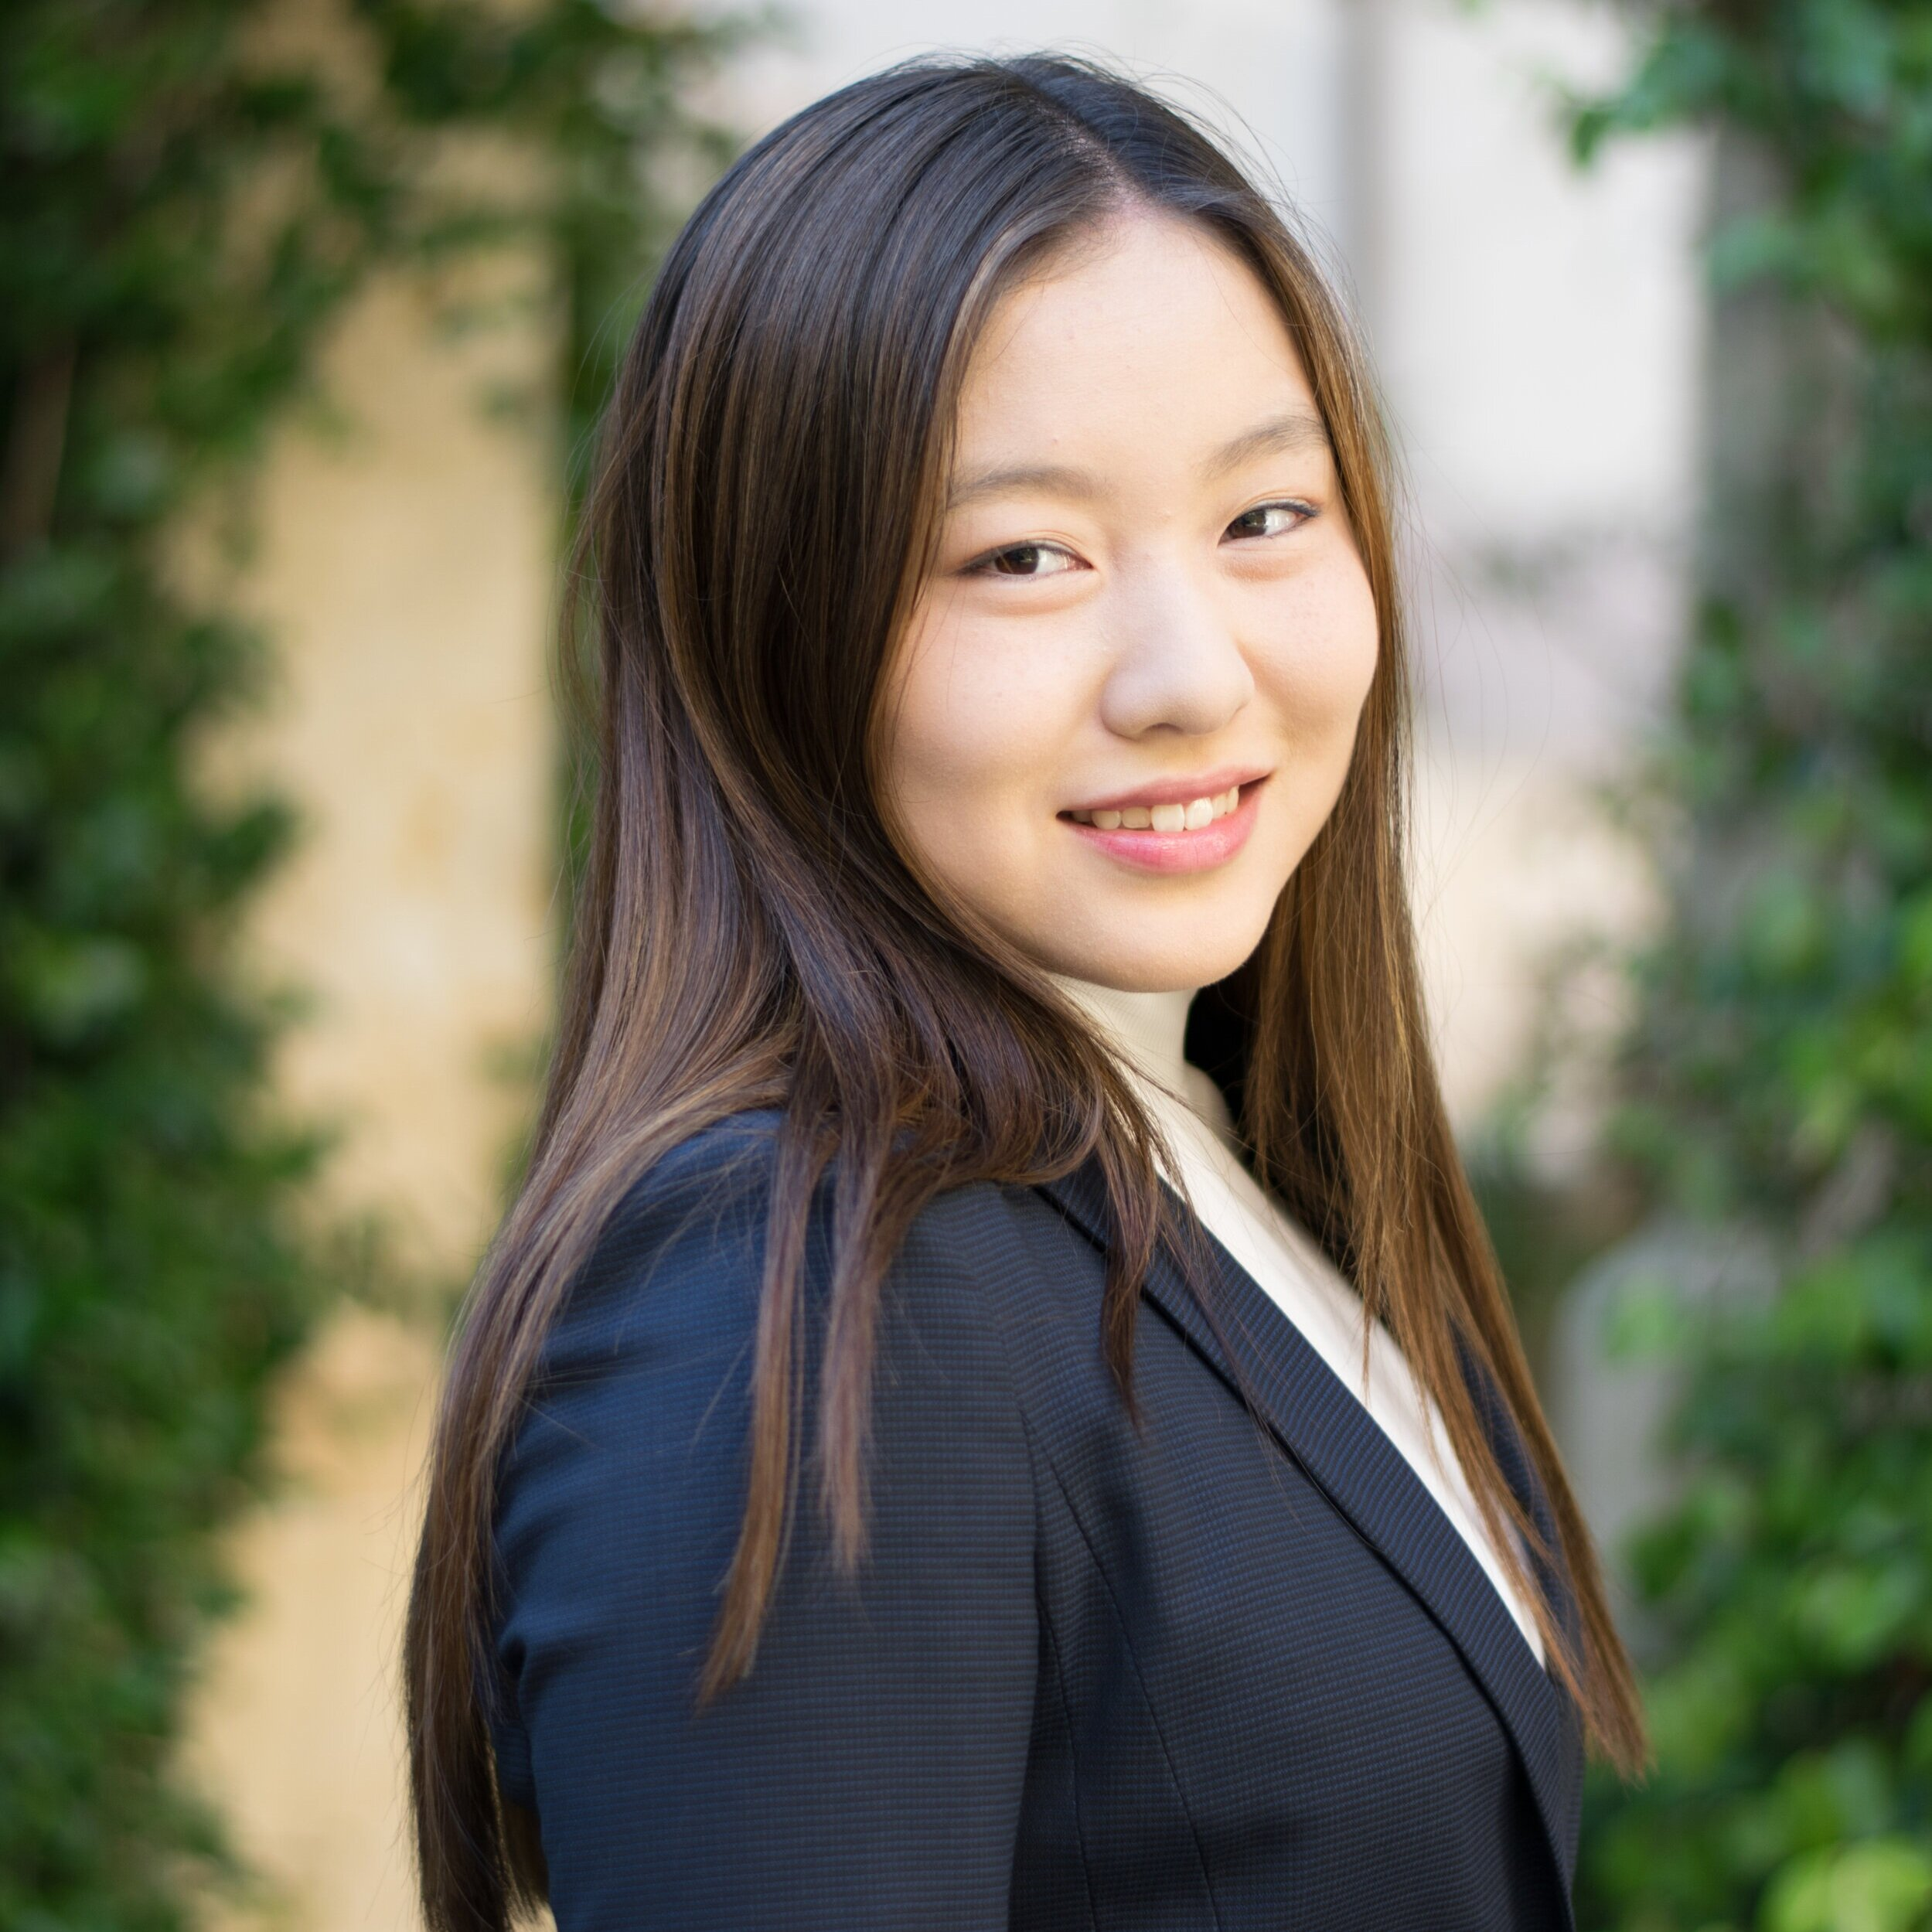 Jenny Feng   Highland Park, TX Finance Class of 2023  Jenny is excited to be a part of USIT. She enjoys reading a wide variety of books spanning from learning a new language to the most popular fiction novels. Besides finding her zoned out to music, Jenny loves finding new restaurants to eat and enjoys long walks along peaceful scenery. She has also lived in Shanghai, China and Montreal, Canada, so if you ever wanted to have late night talks in Chinese, make maple syrup snow candy, or just go on a foodie trip, she is always up for fun.